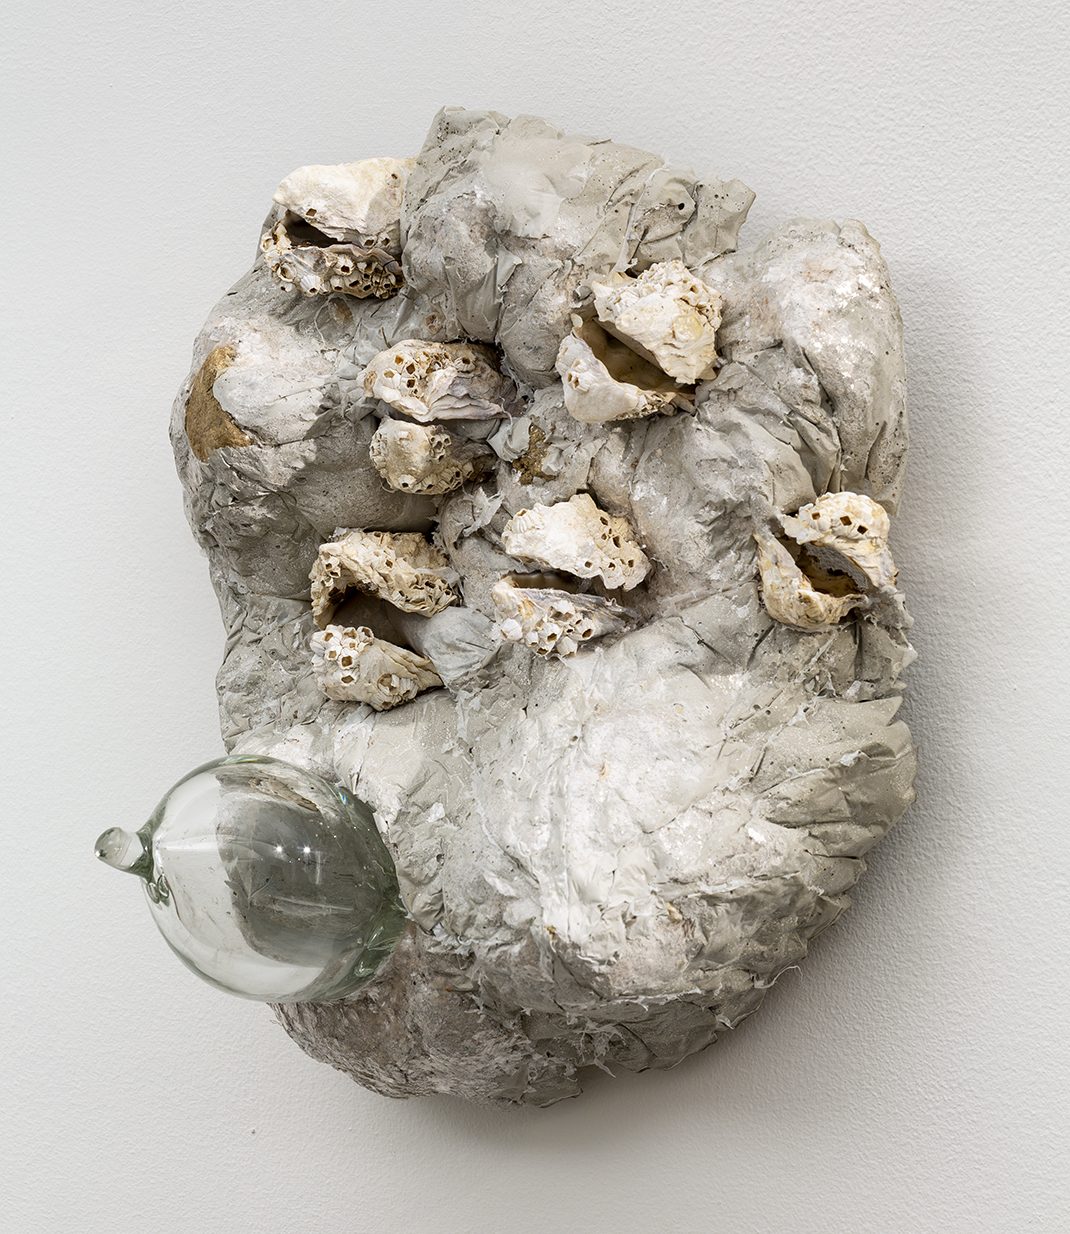 Buden, Alta, Umbos, 2019, Rockite, oyster shells, mica, handblown glass, 13 x 11 x 6 inches.jpg